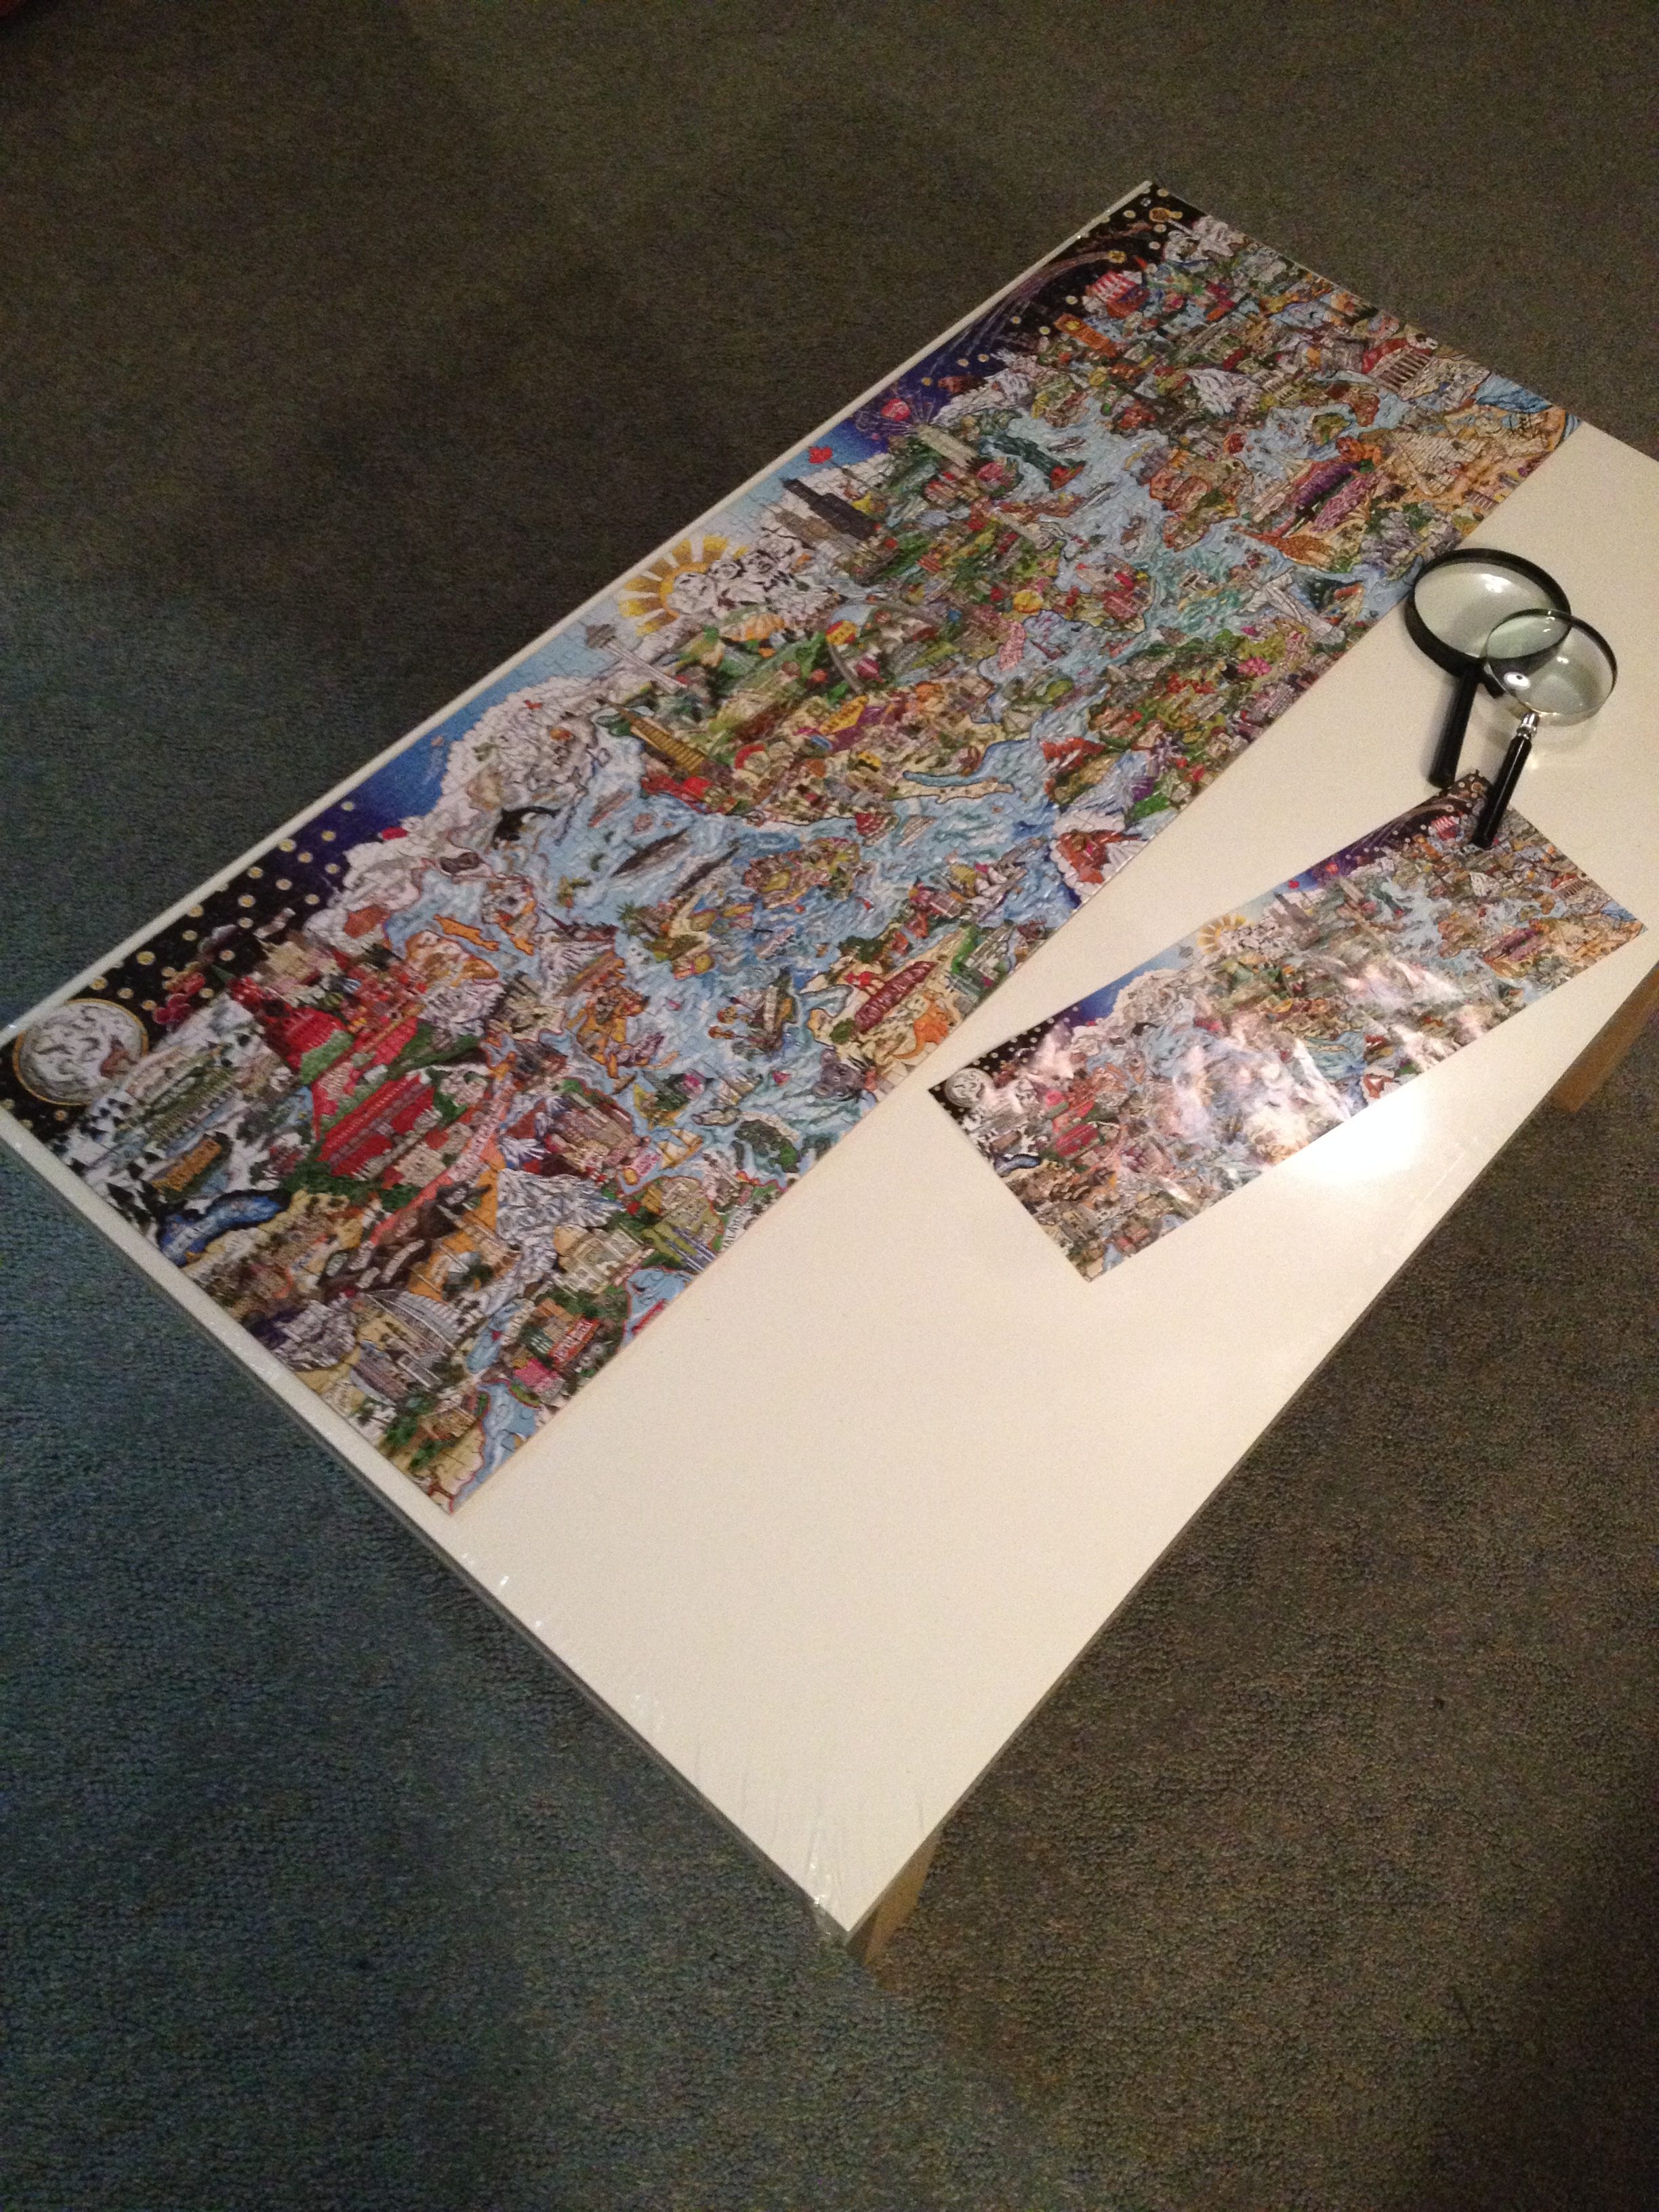 Completed puzzle!